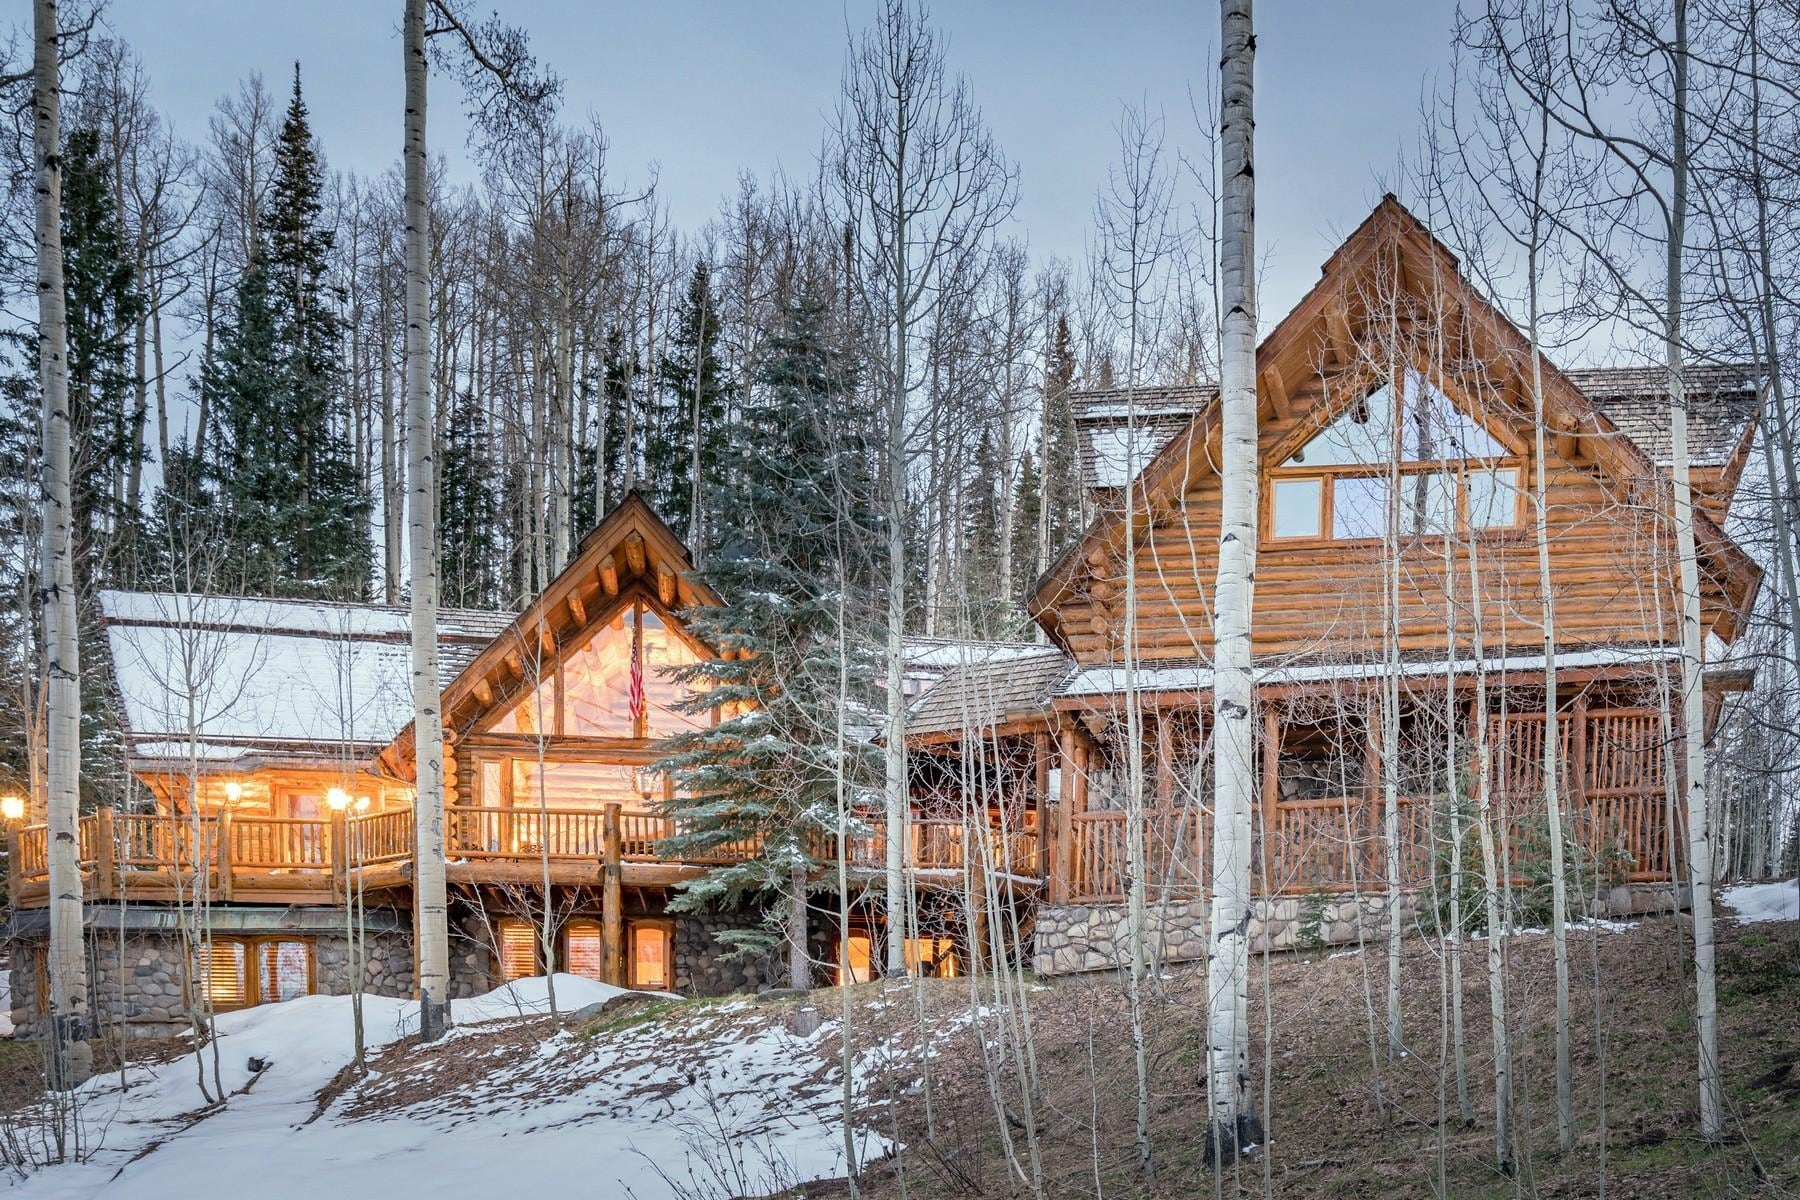 Luxurious Ski-in Ski-out Log Cabin with Wood-Burning Fireplace